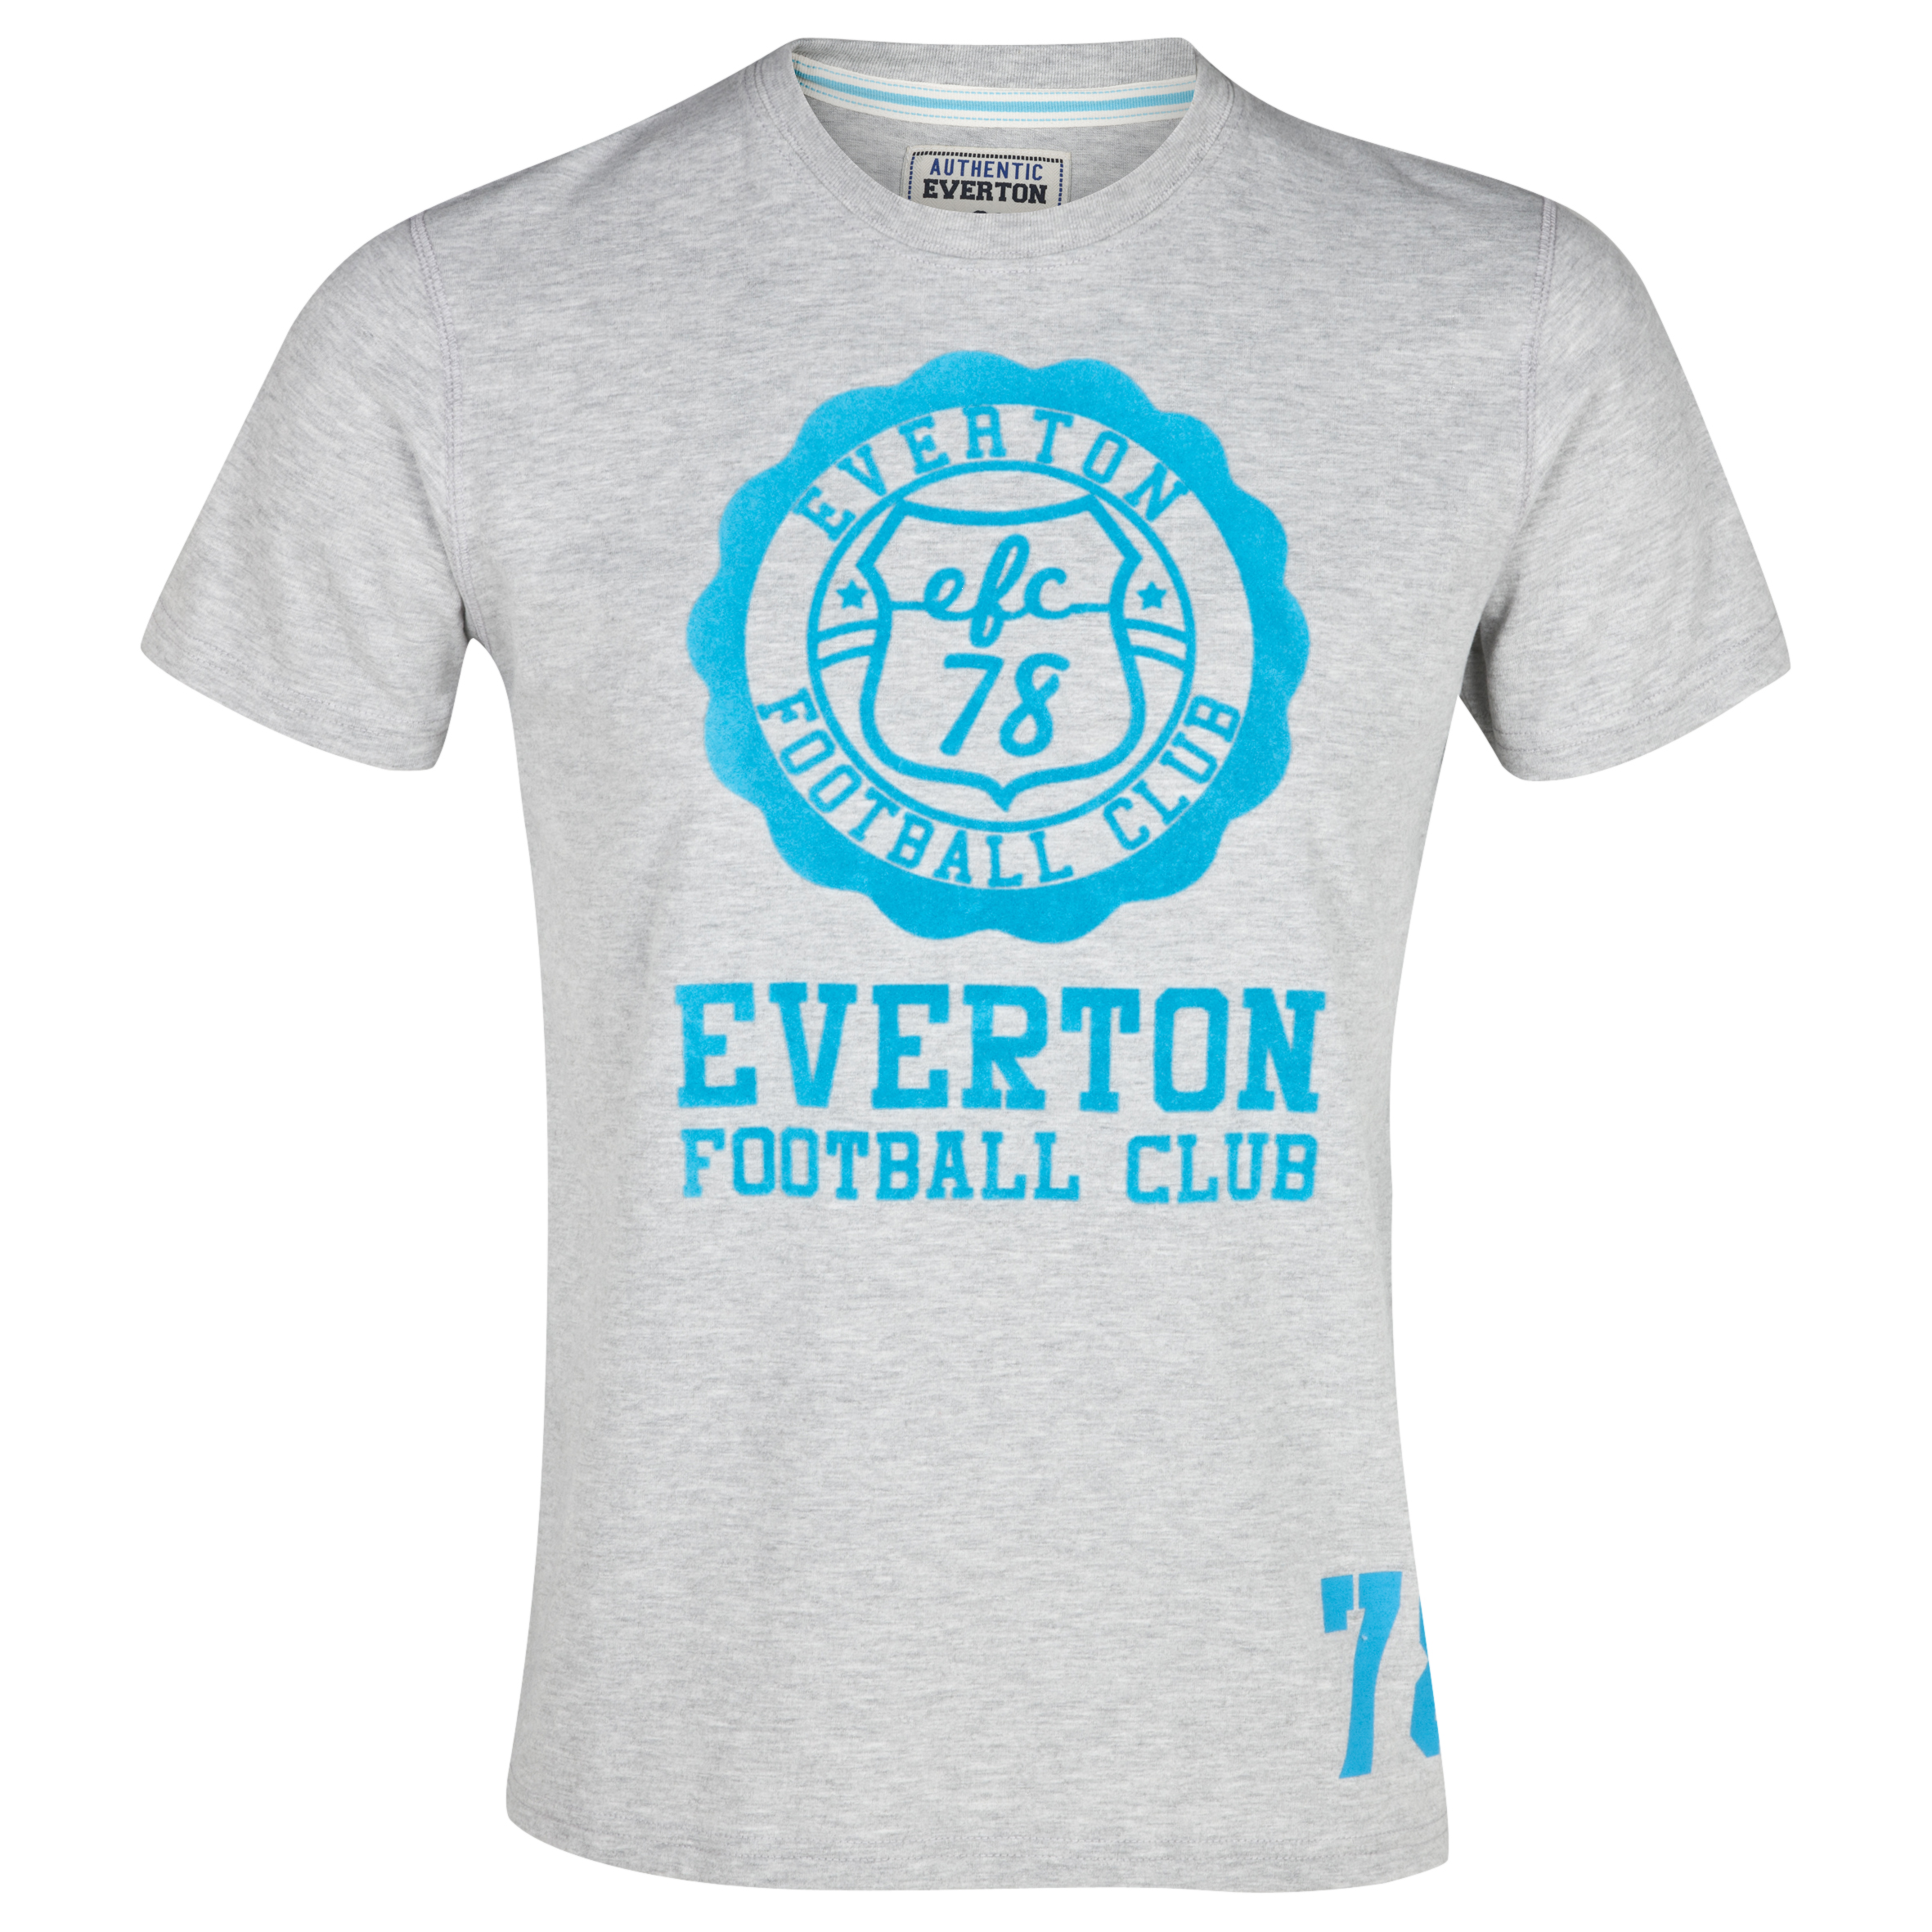 Everton Halo T-Shirt - Grey/Aqua - Older Boys